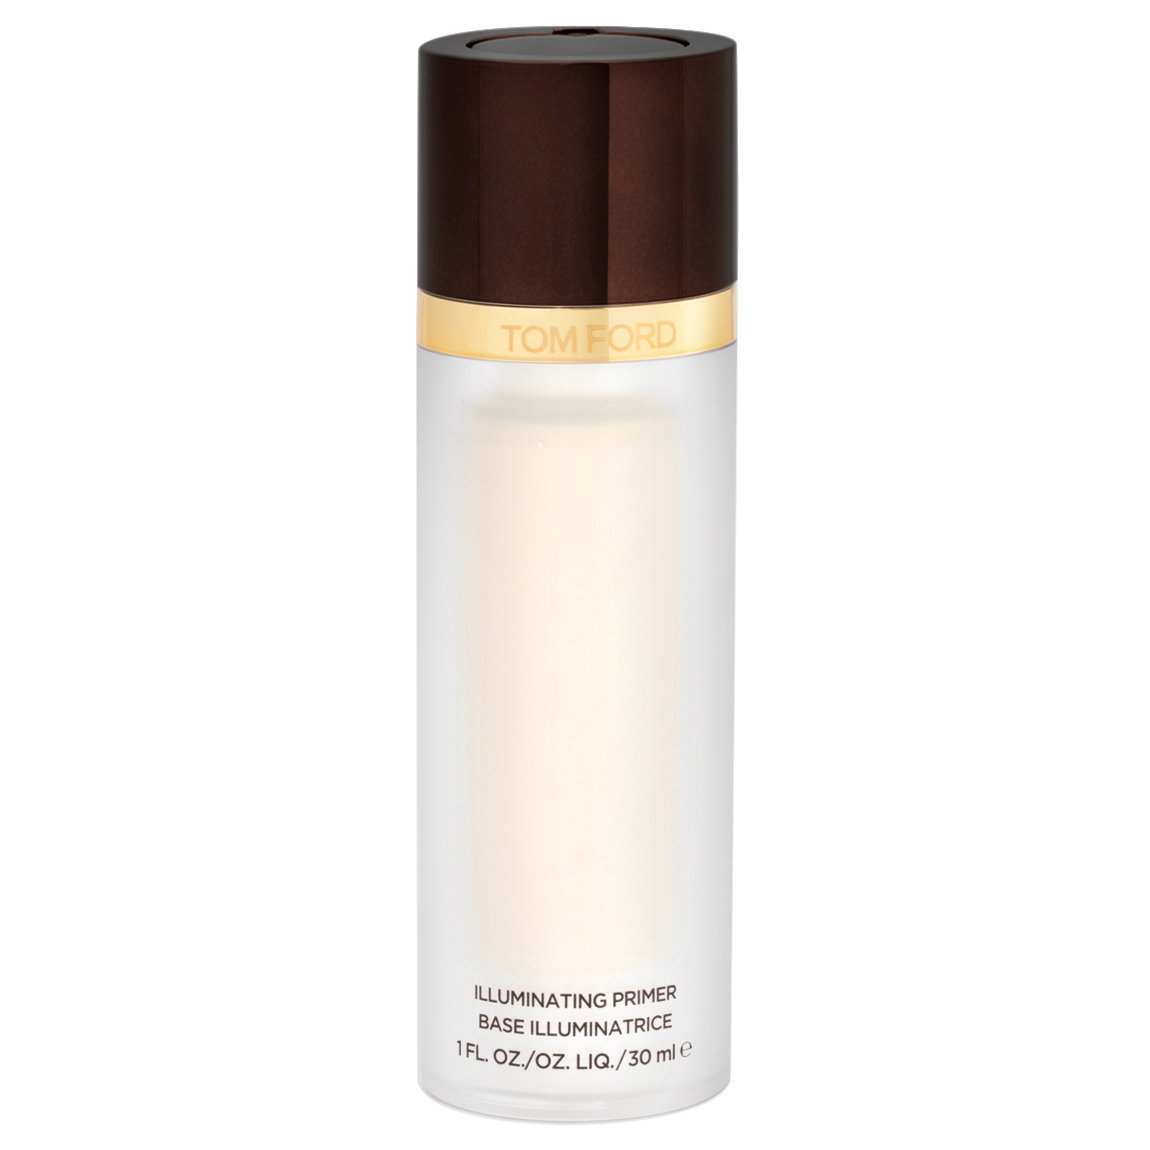 TOM FORD Illuminating Primer product smear.